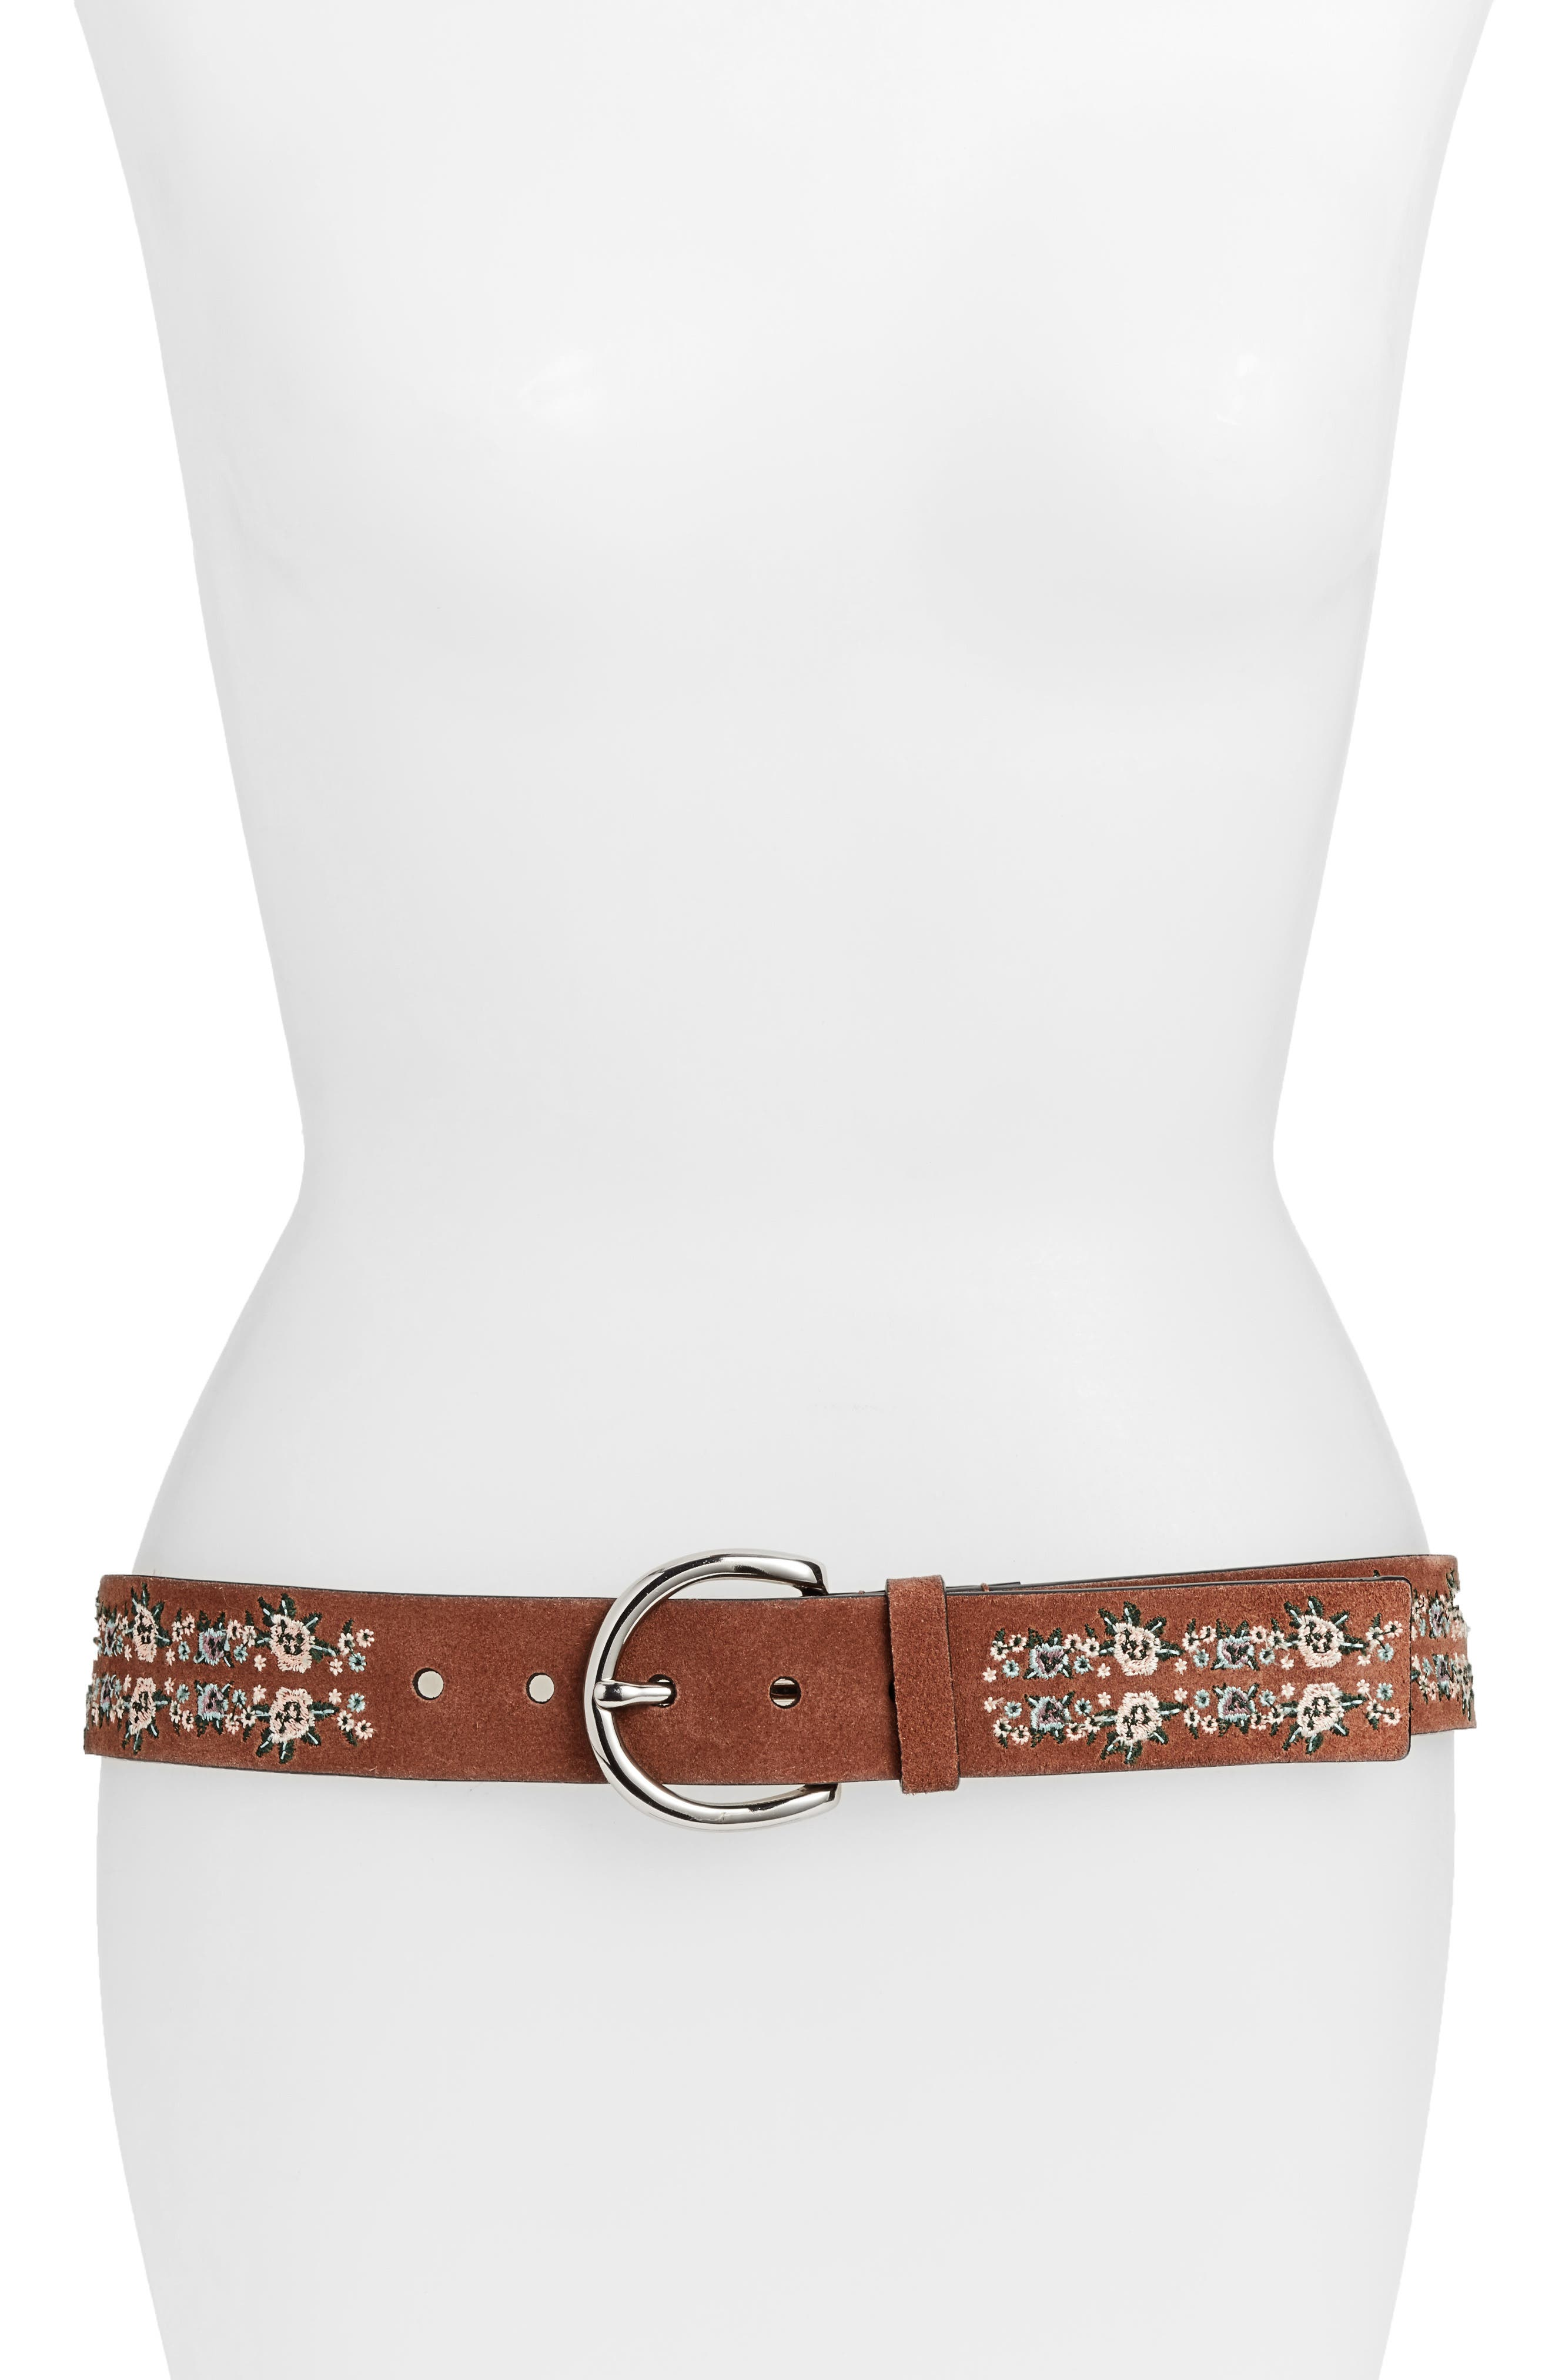 Selena Embroidered Leather Belt,                         Main,                         color, Luggage